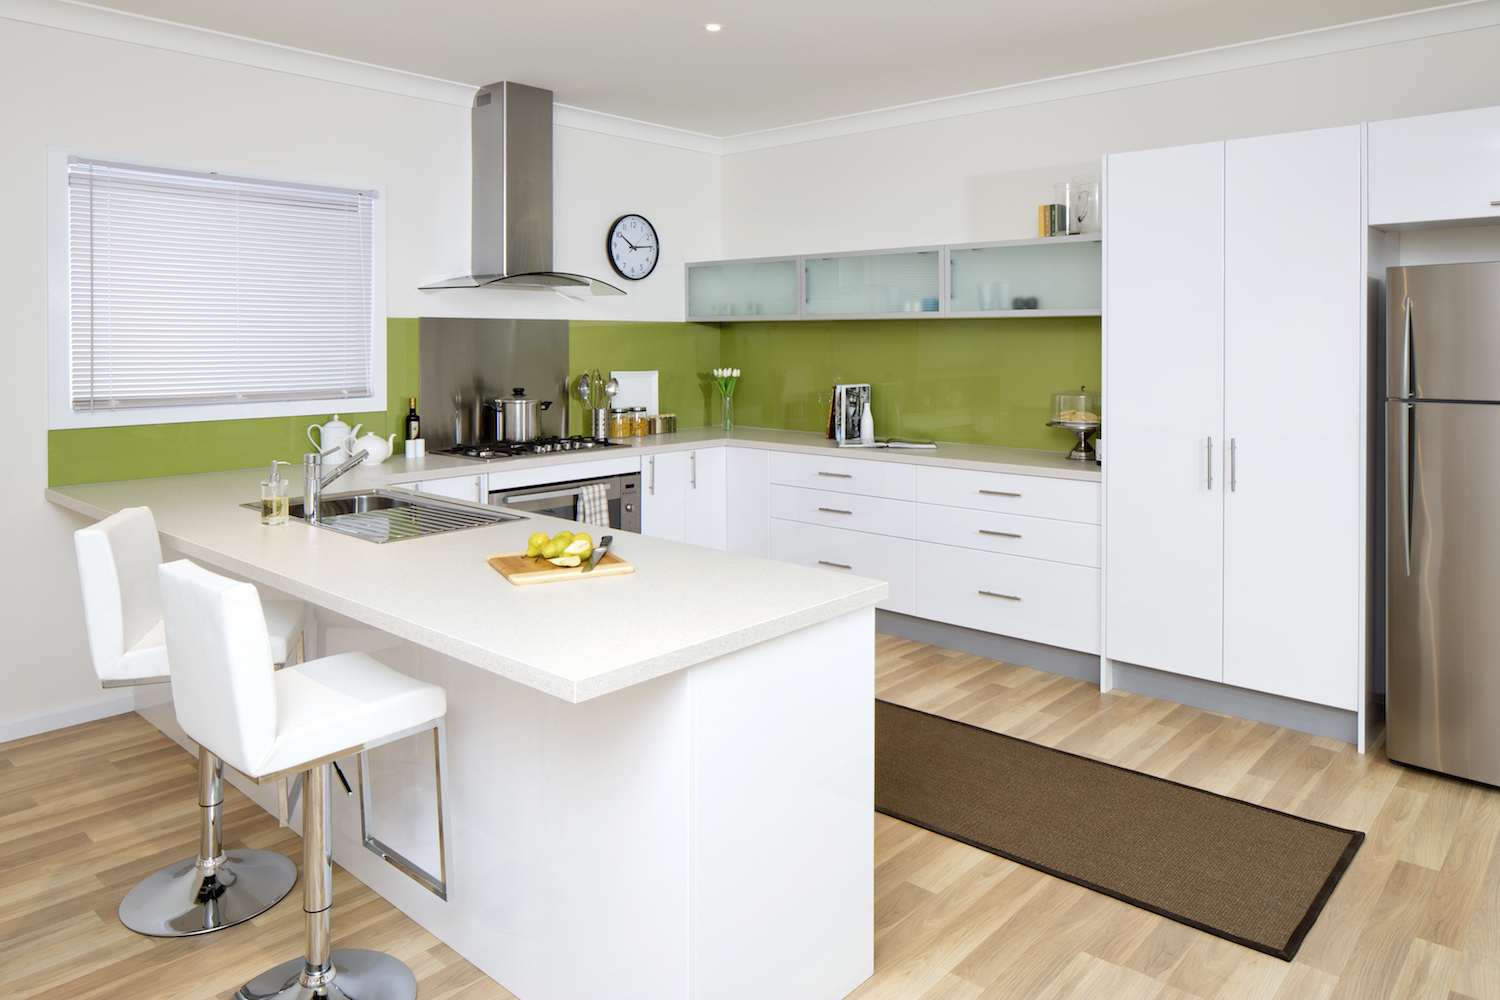 Flat Pack Kitchen Cupboards Cook In Comfort Kitchen Ideas And Inspiration Kaboodle